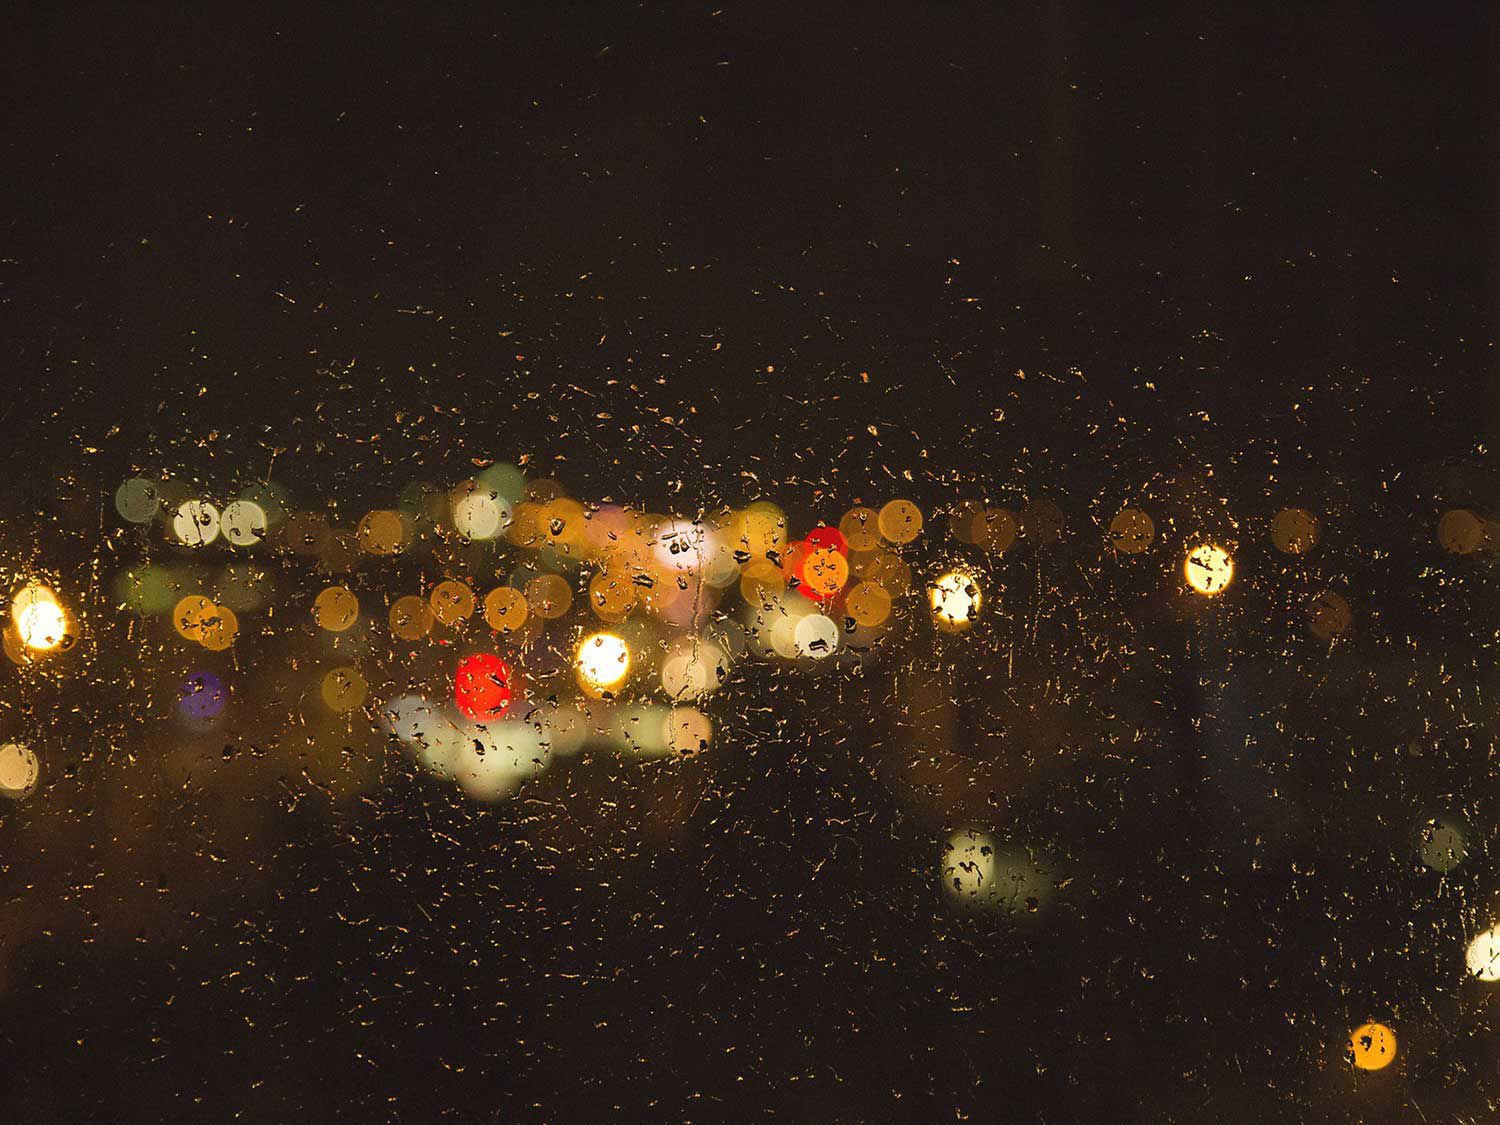 It's hard enough to make out objects when it rains, but when it's dark too, boost your safety with accessories that make you stand out.